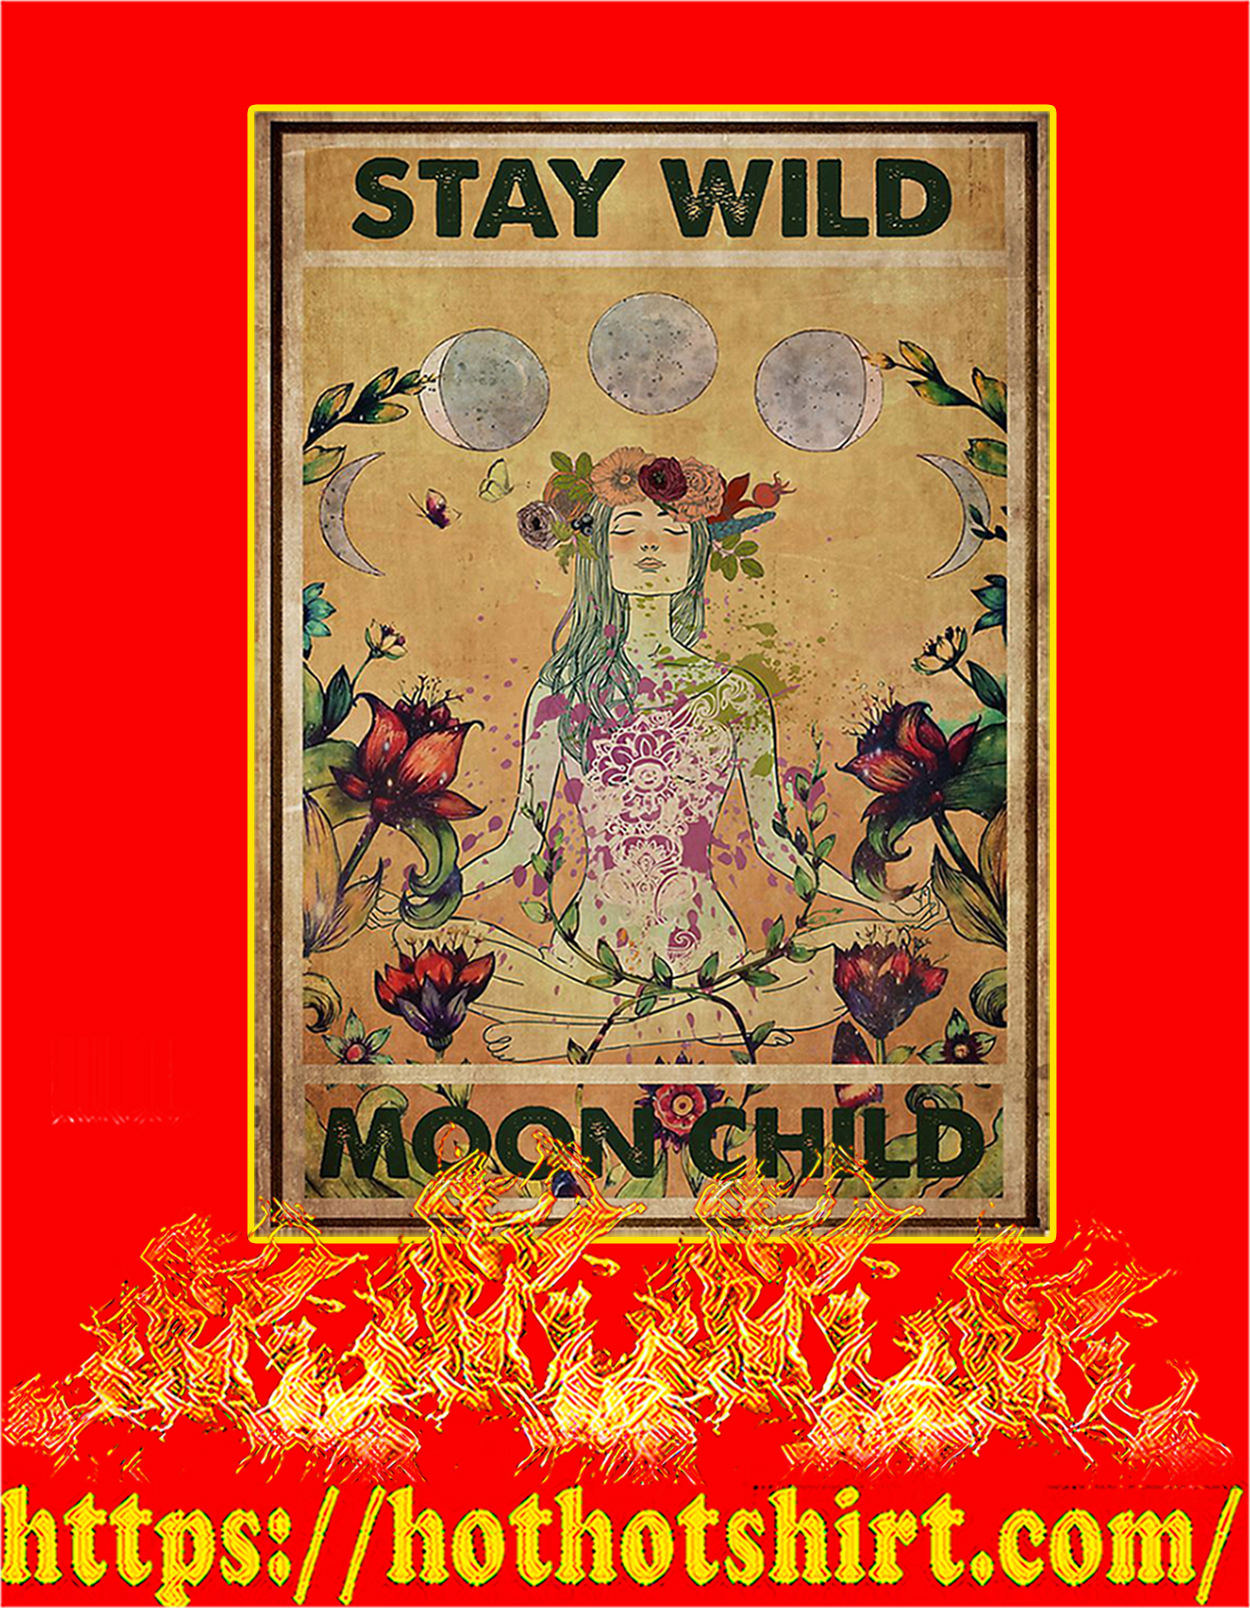 Hippie yoga stay wild moon child poster - A2